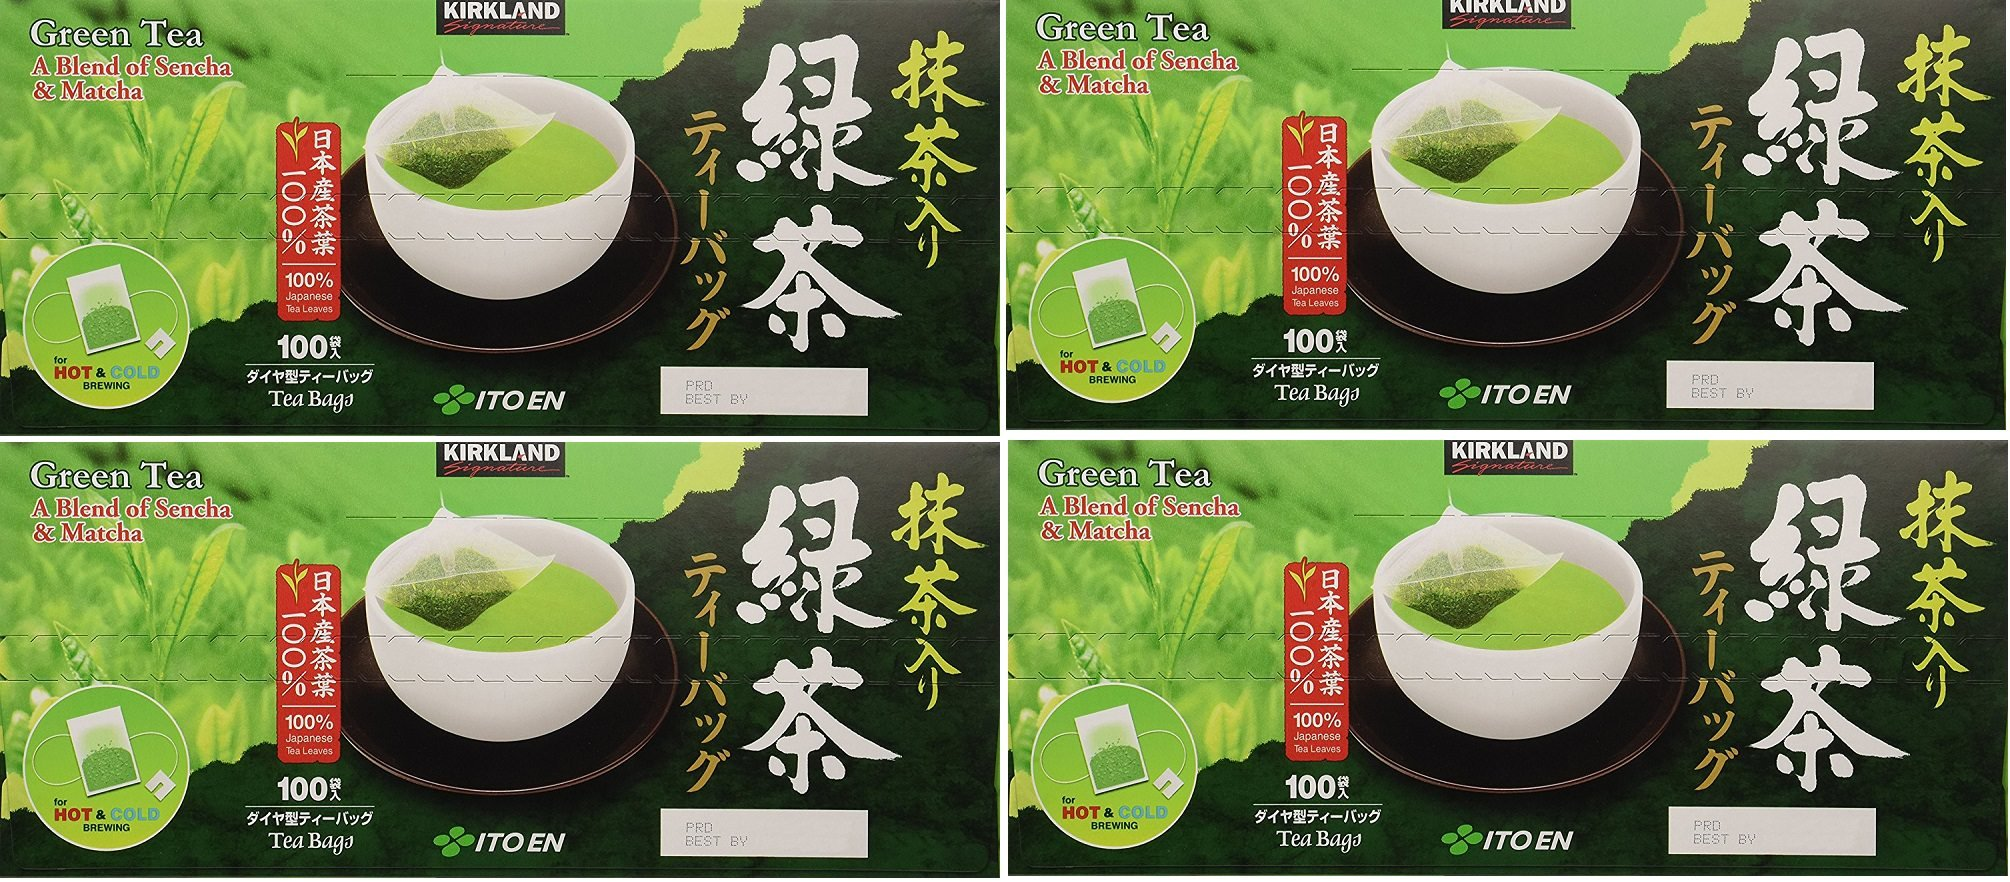 Kirkland Ito En Matcha Blend Japanese Green Tea, 1.5g Tea Bags (400 Count) by Kirkland Signature